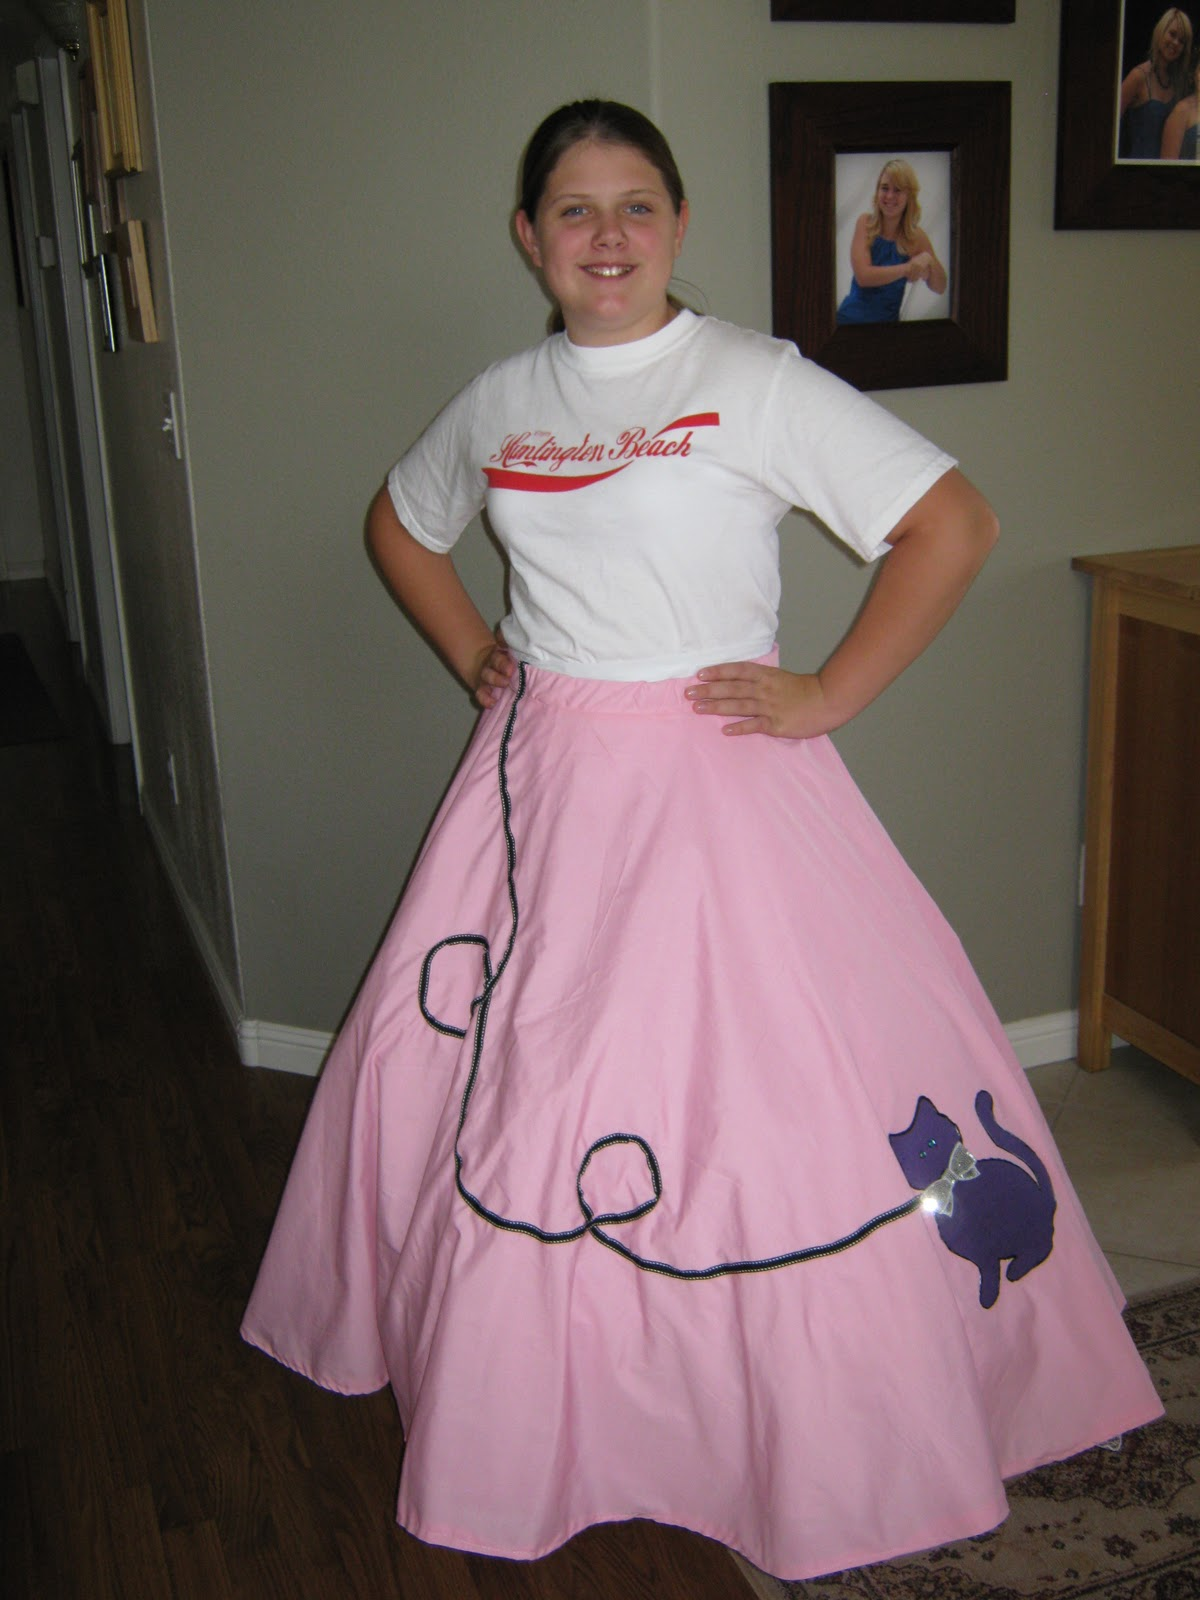 Bridesmaid Dresses For 11 Year Old